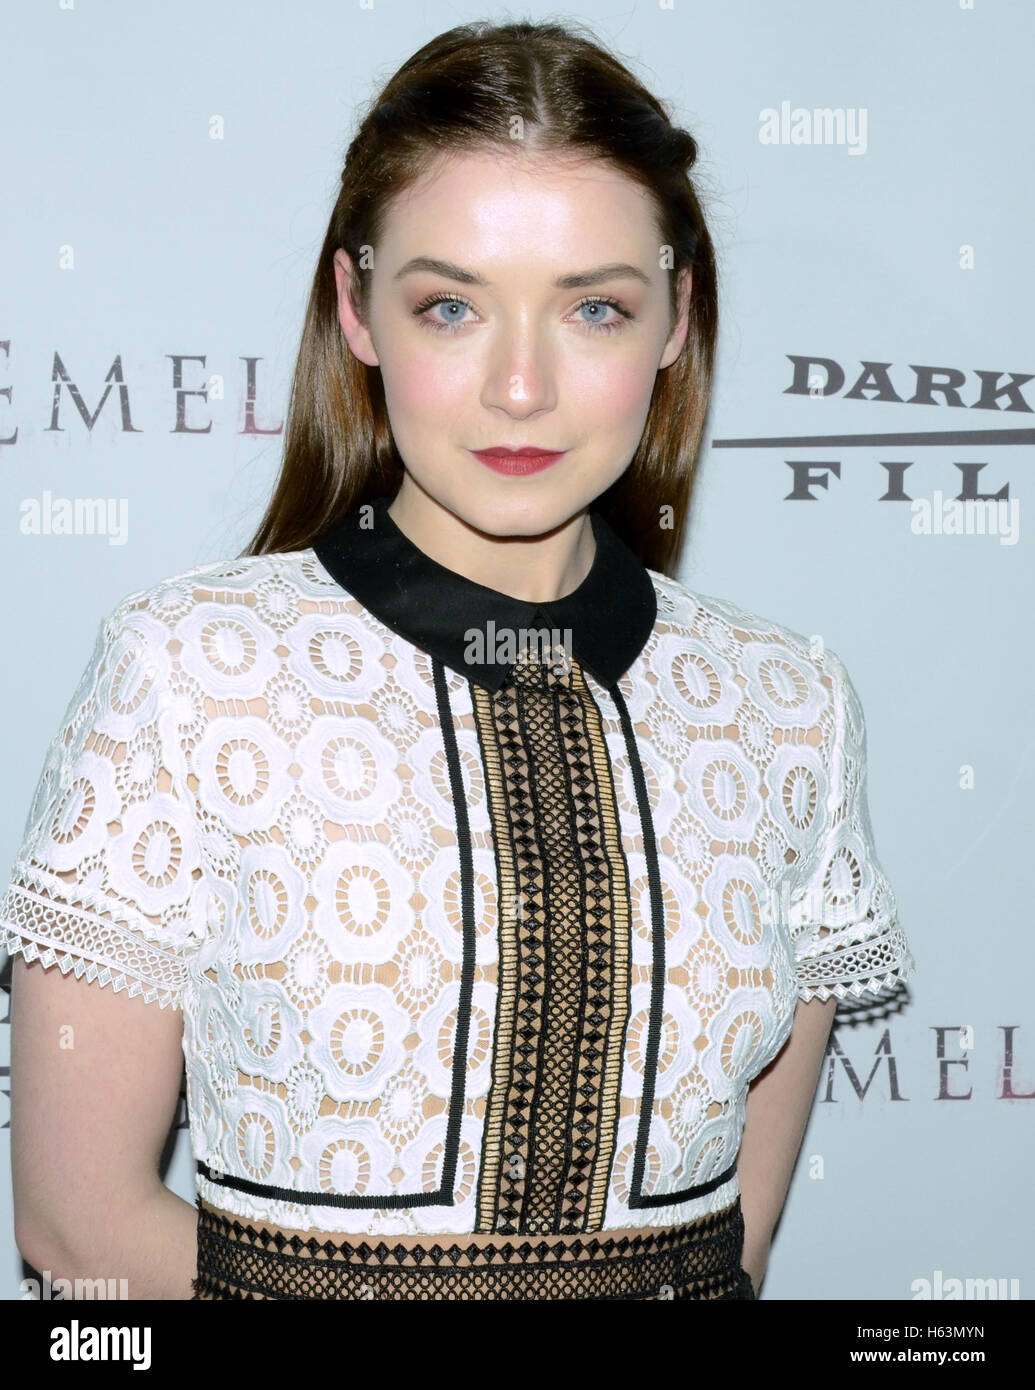 2019 Sarah Bolger nudes (69 foto and video), Sexy, Sideboobs, Boobs, legs 2006